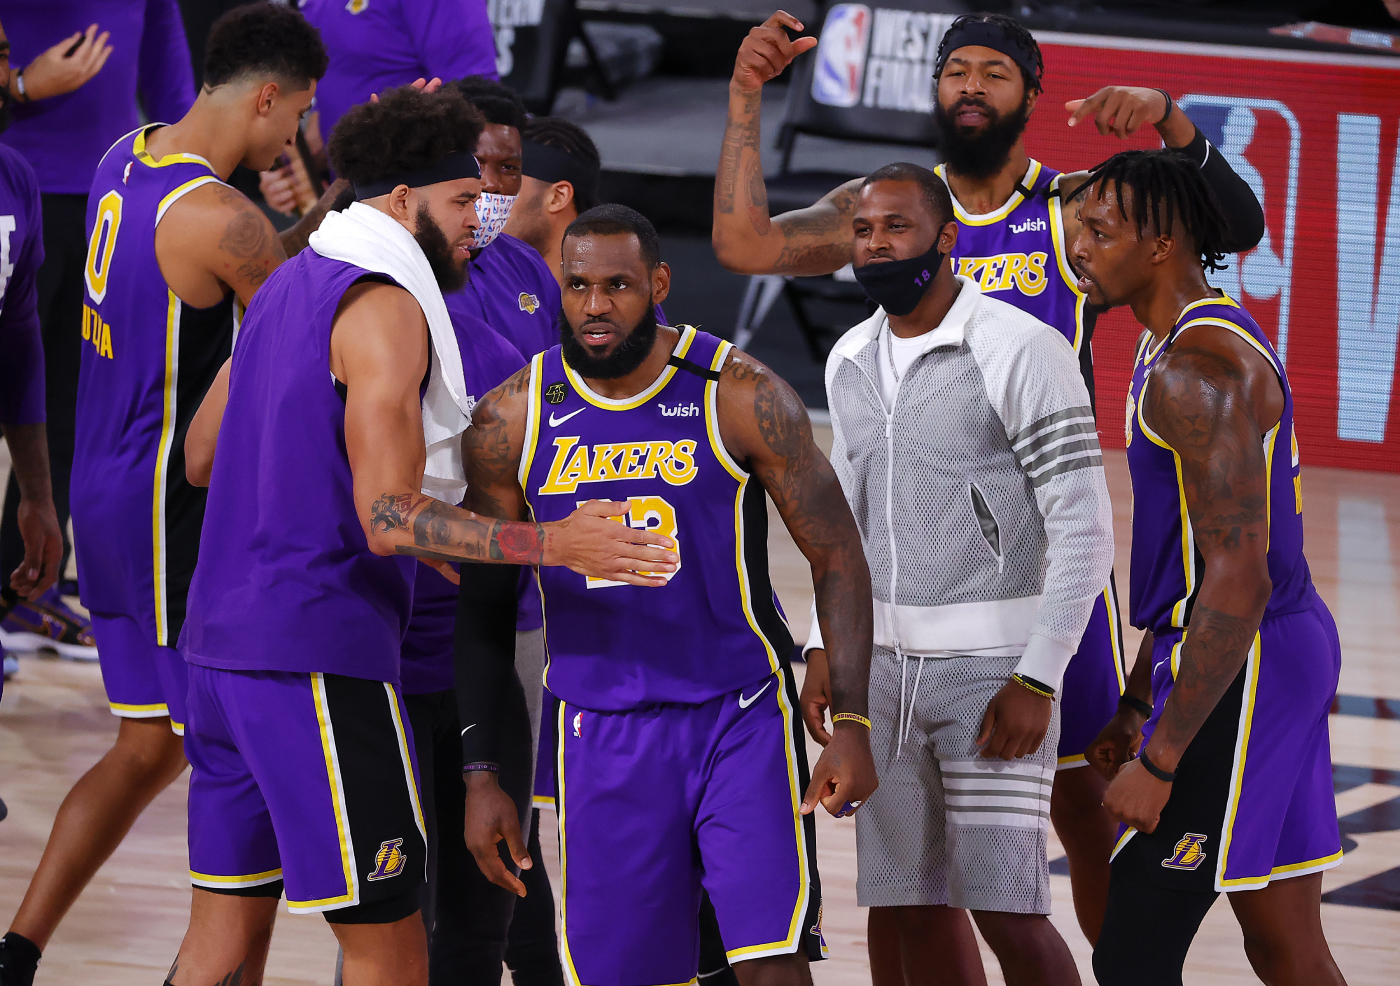 LeBron James and the Lakers just clinched their spot in the NBA Finals. However, Shaquille O'Neal just revealed the team they want to face.